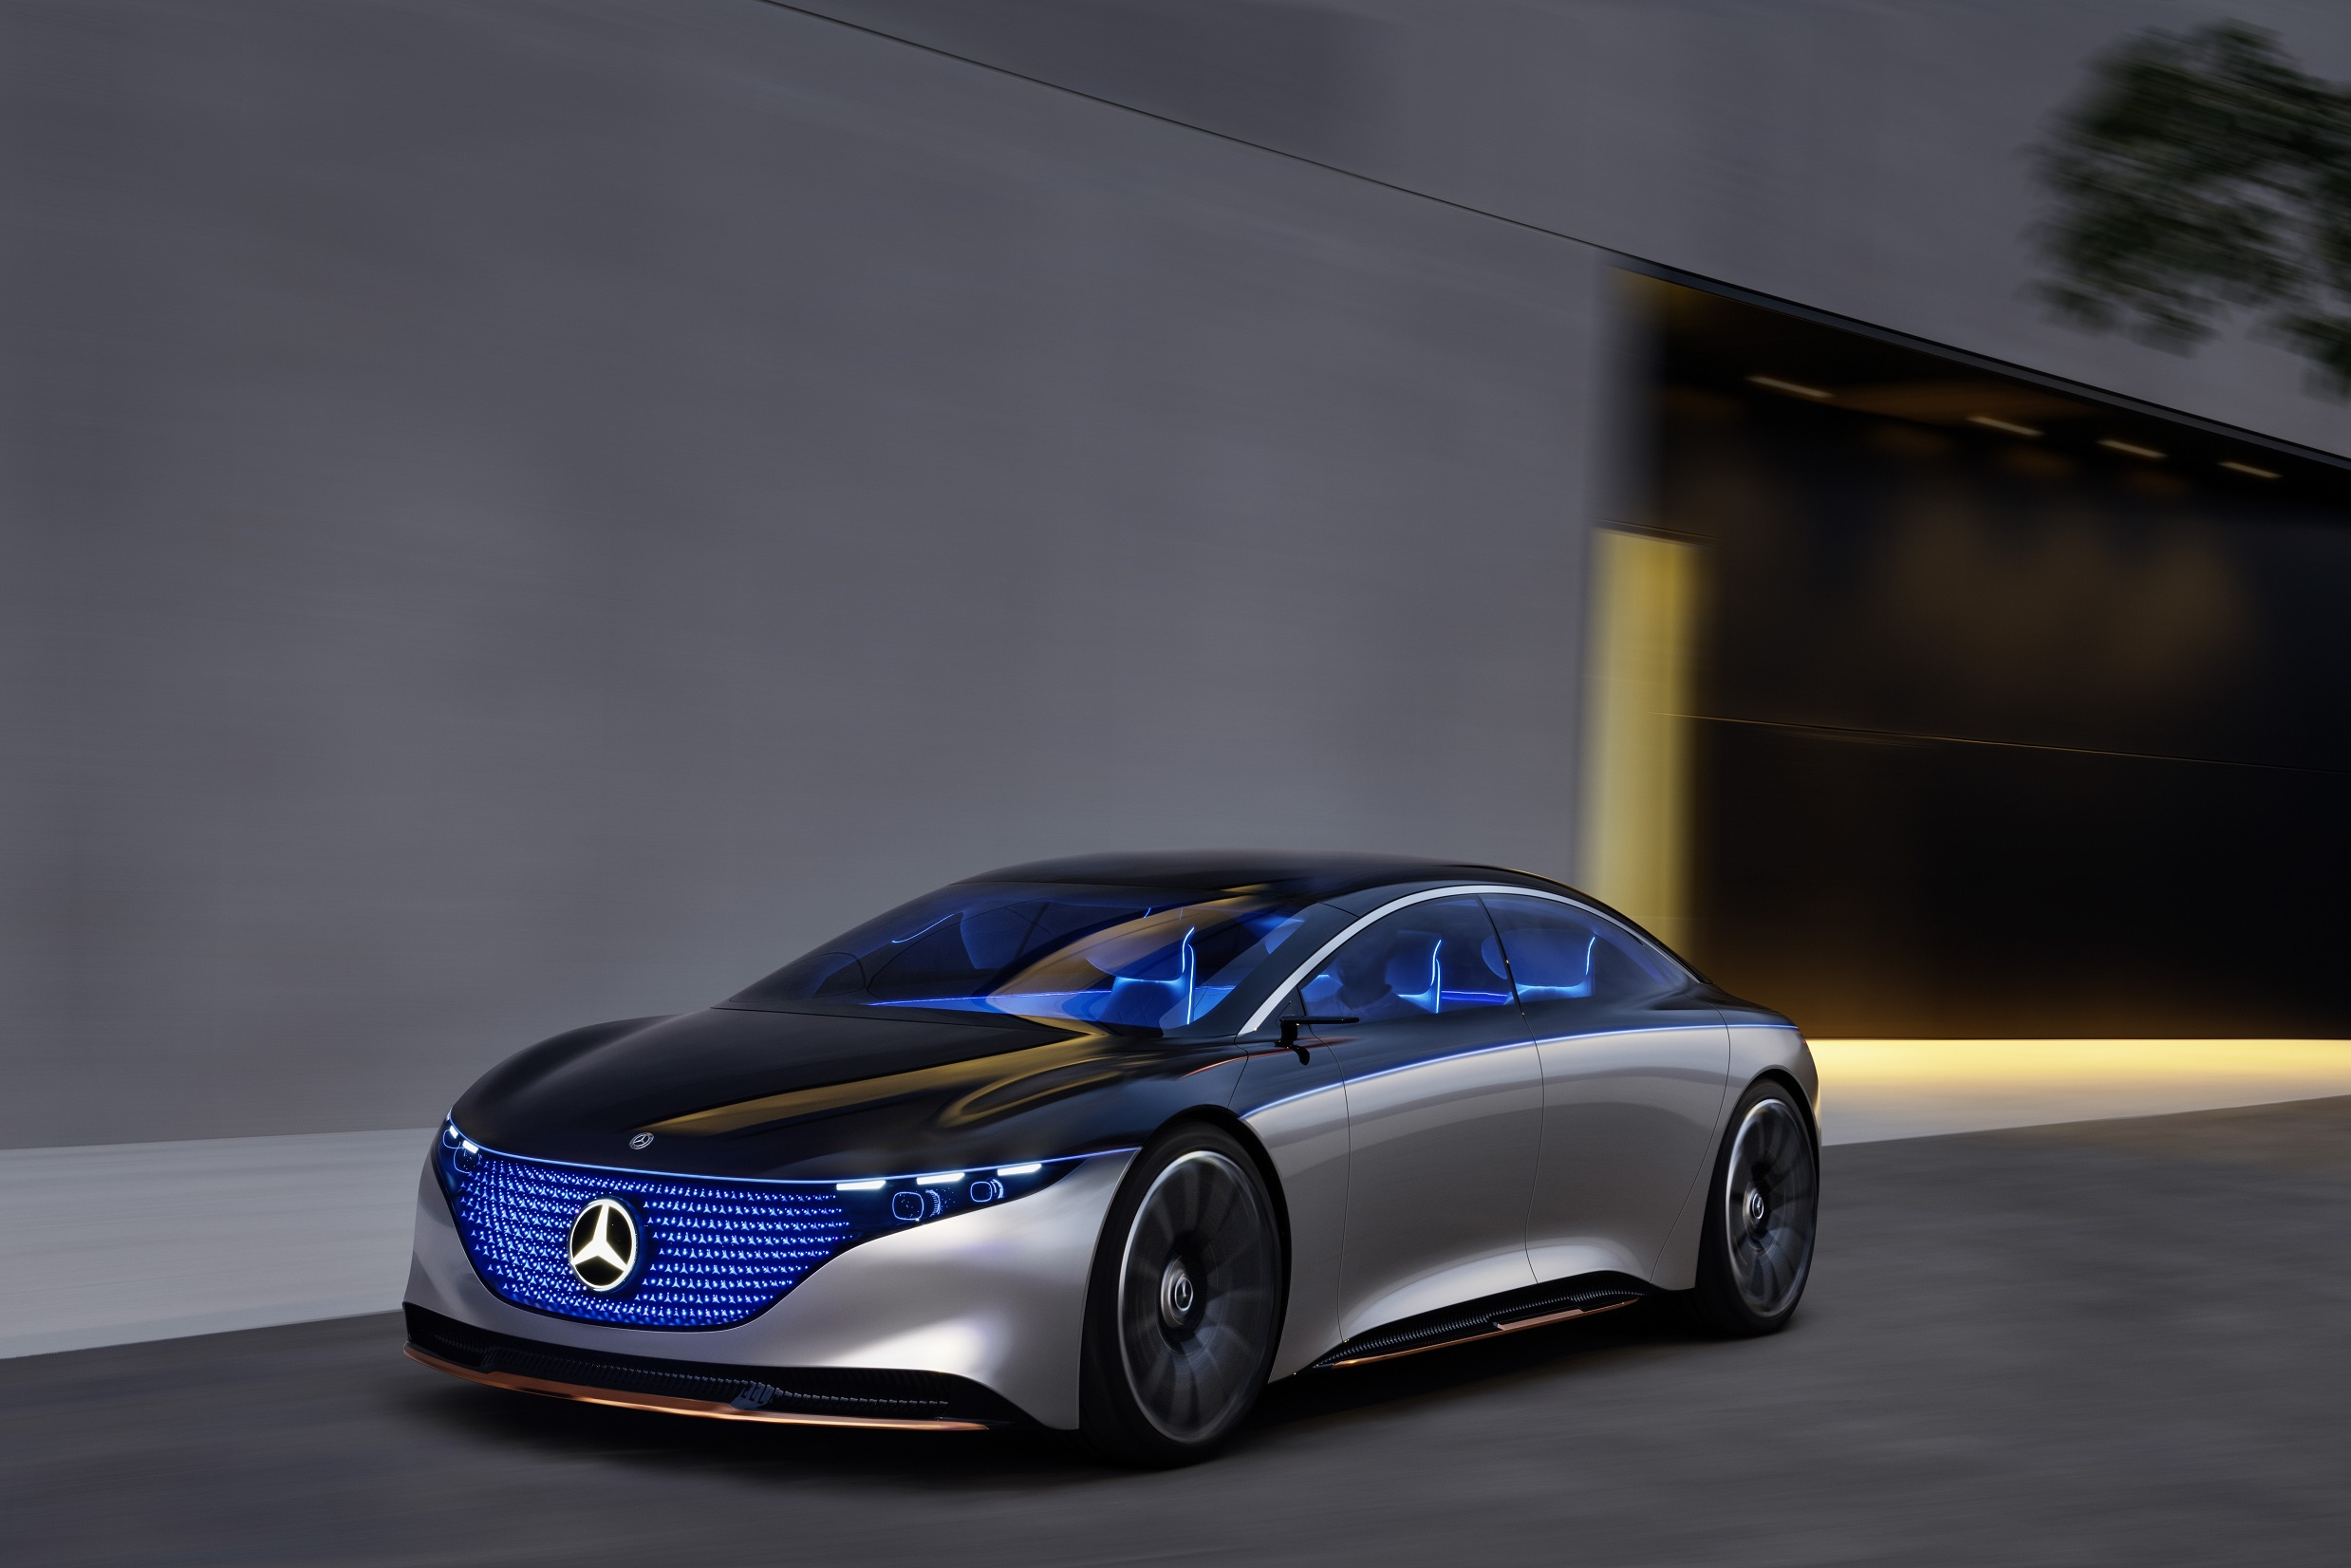 Mercedes EQS concept imagines an S-Class of the future